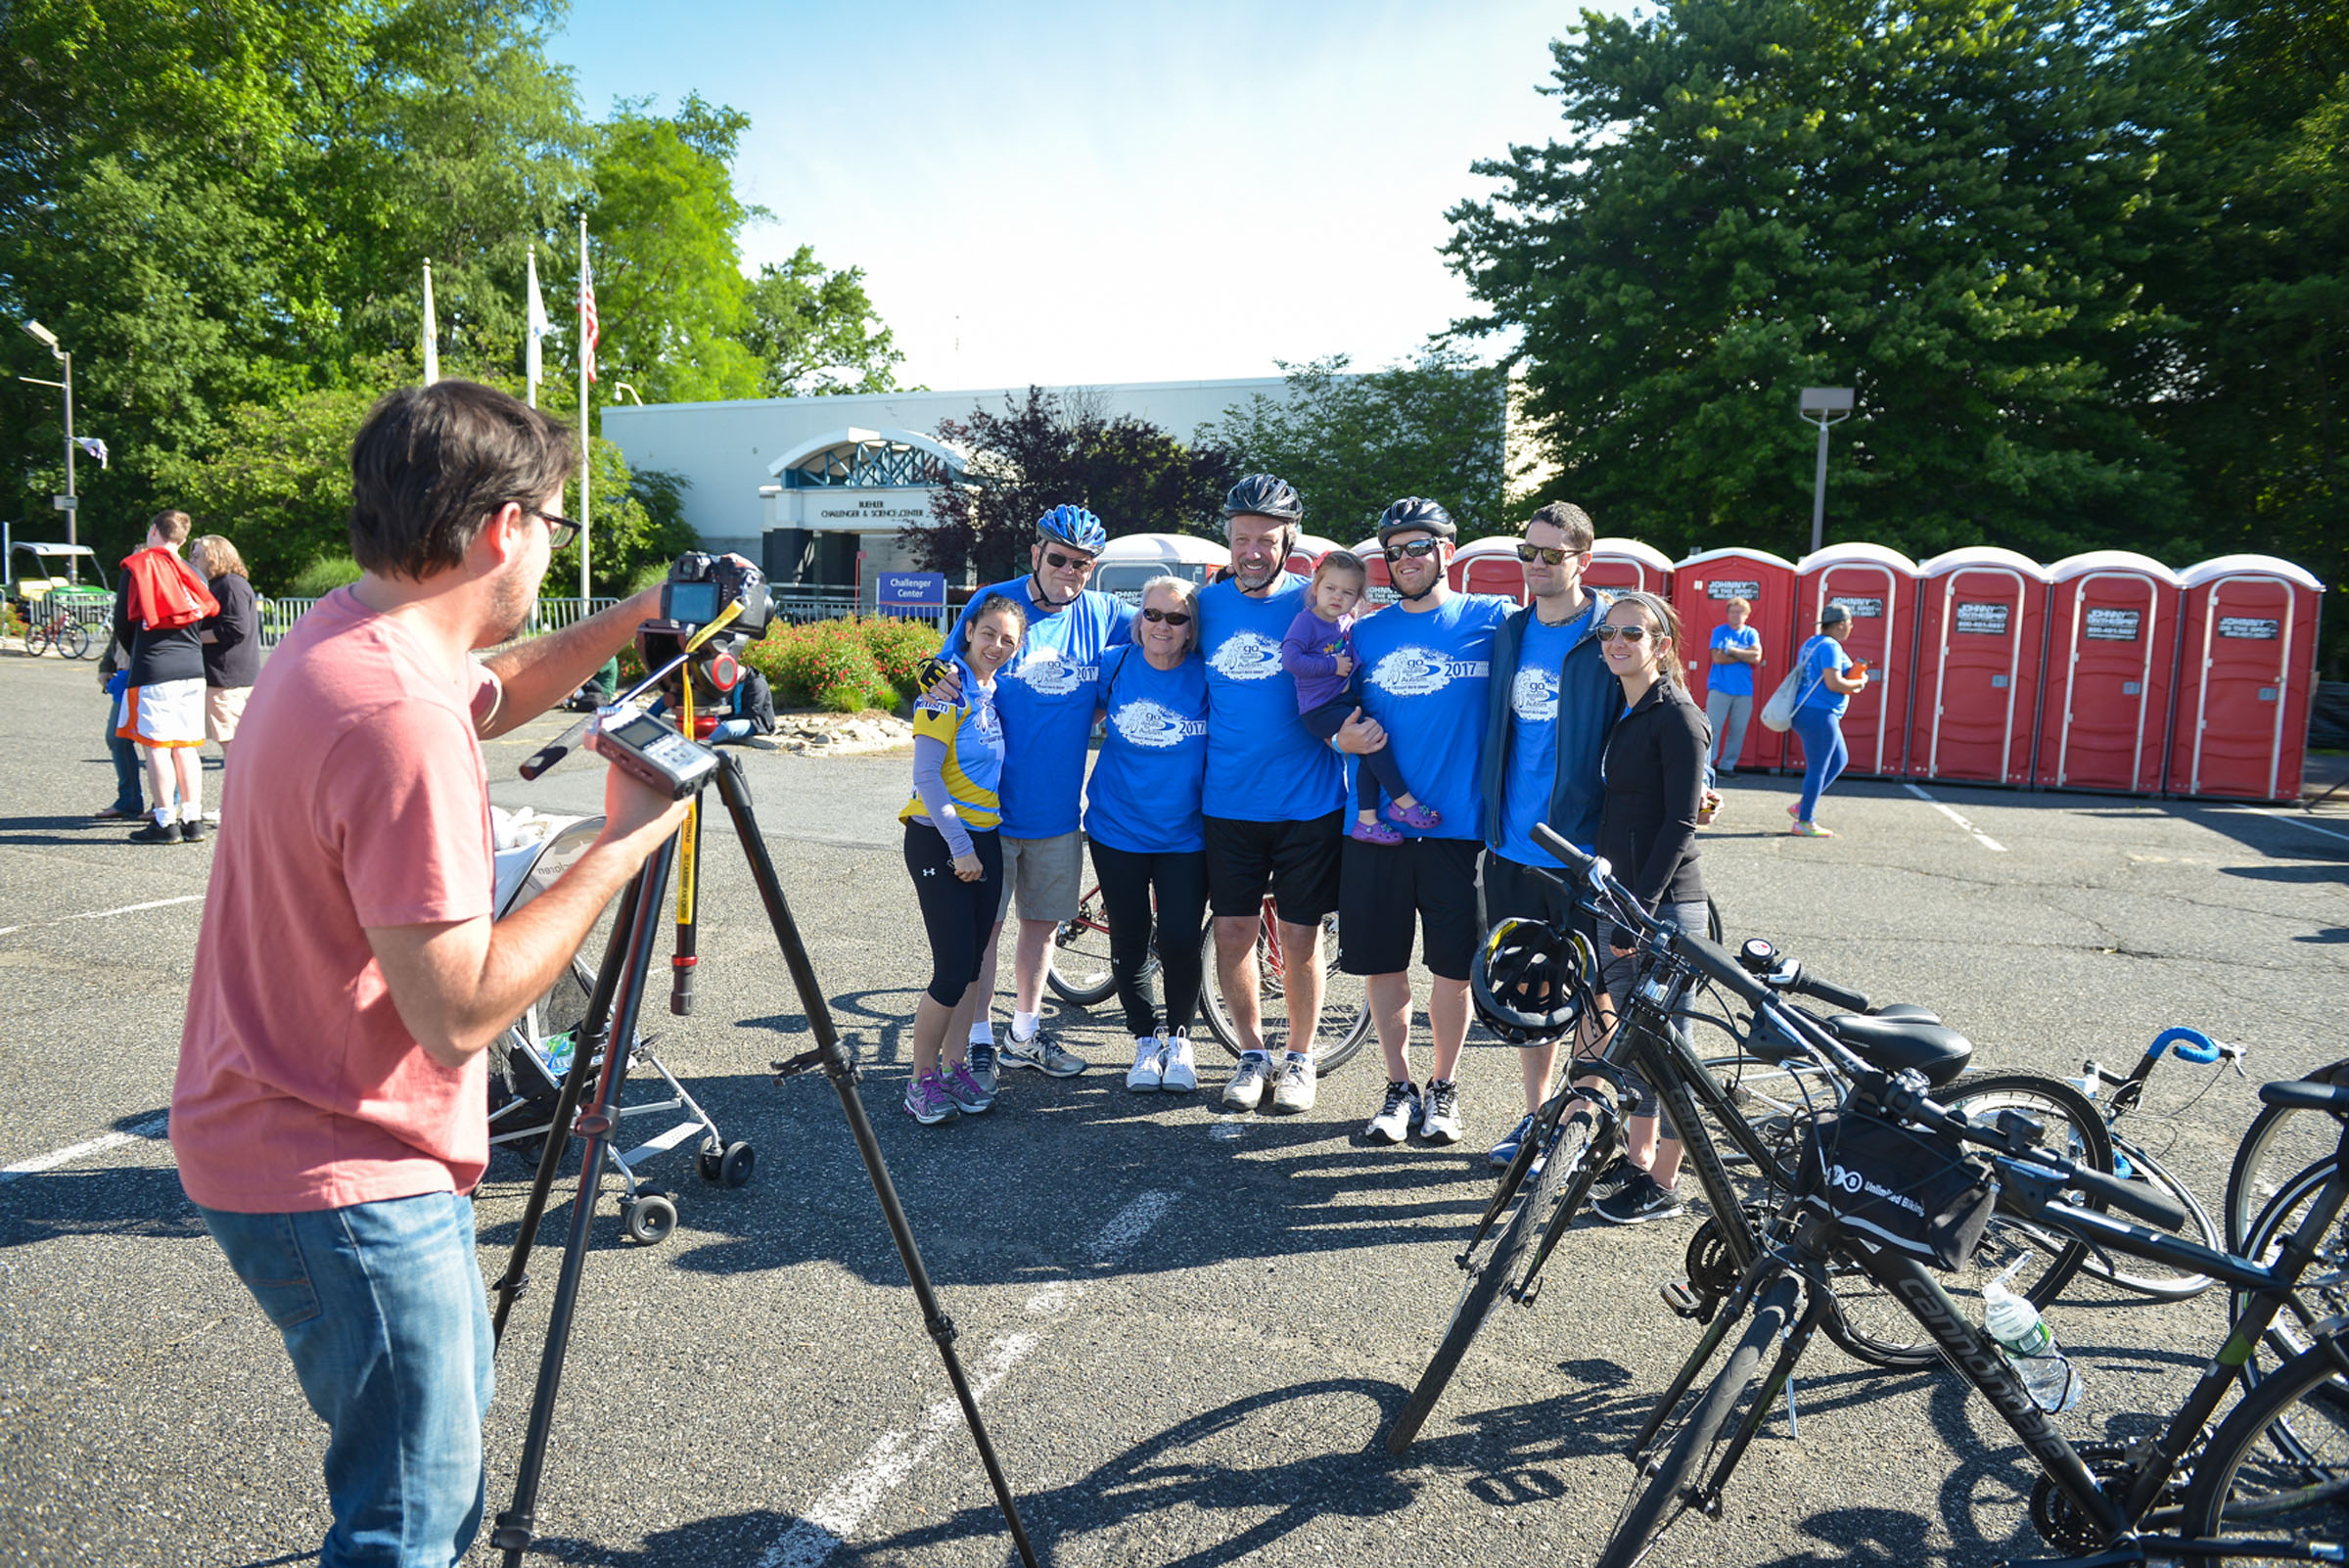 2017-06-04 GTD4A Charity Bike Ride - BCC - Paramus NJ-1841.jpg